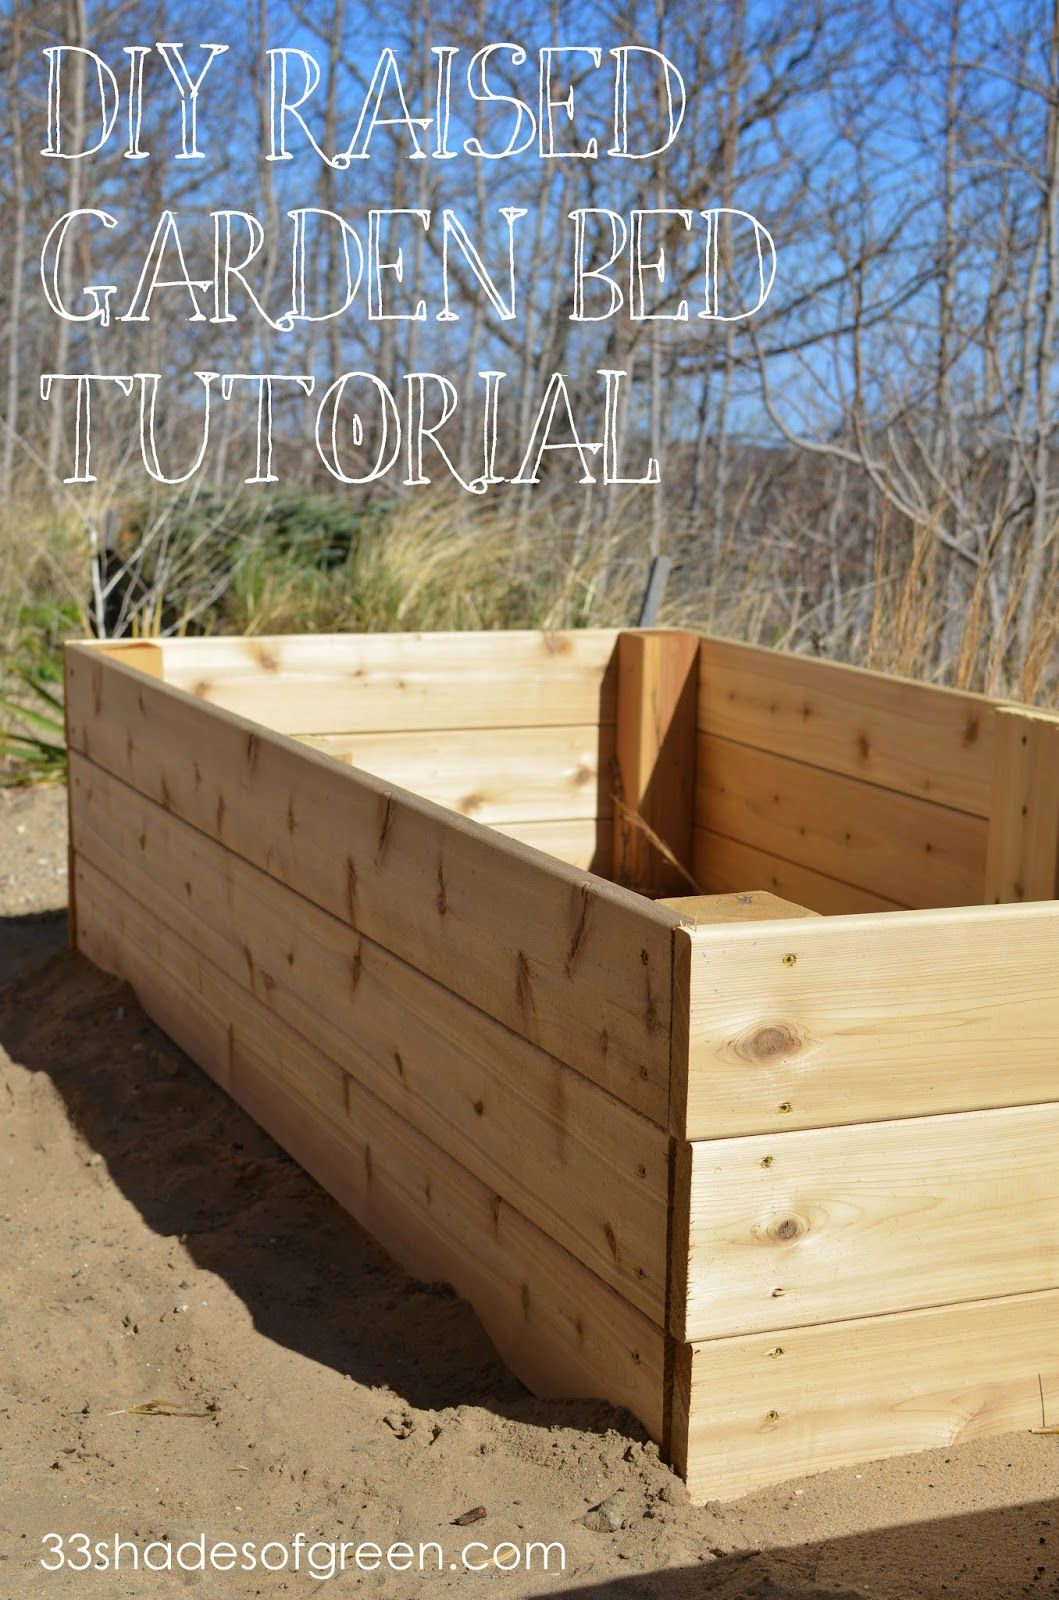 Planting a Raised Garden Bed Gardens Raised beds and Raised